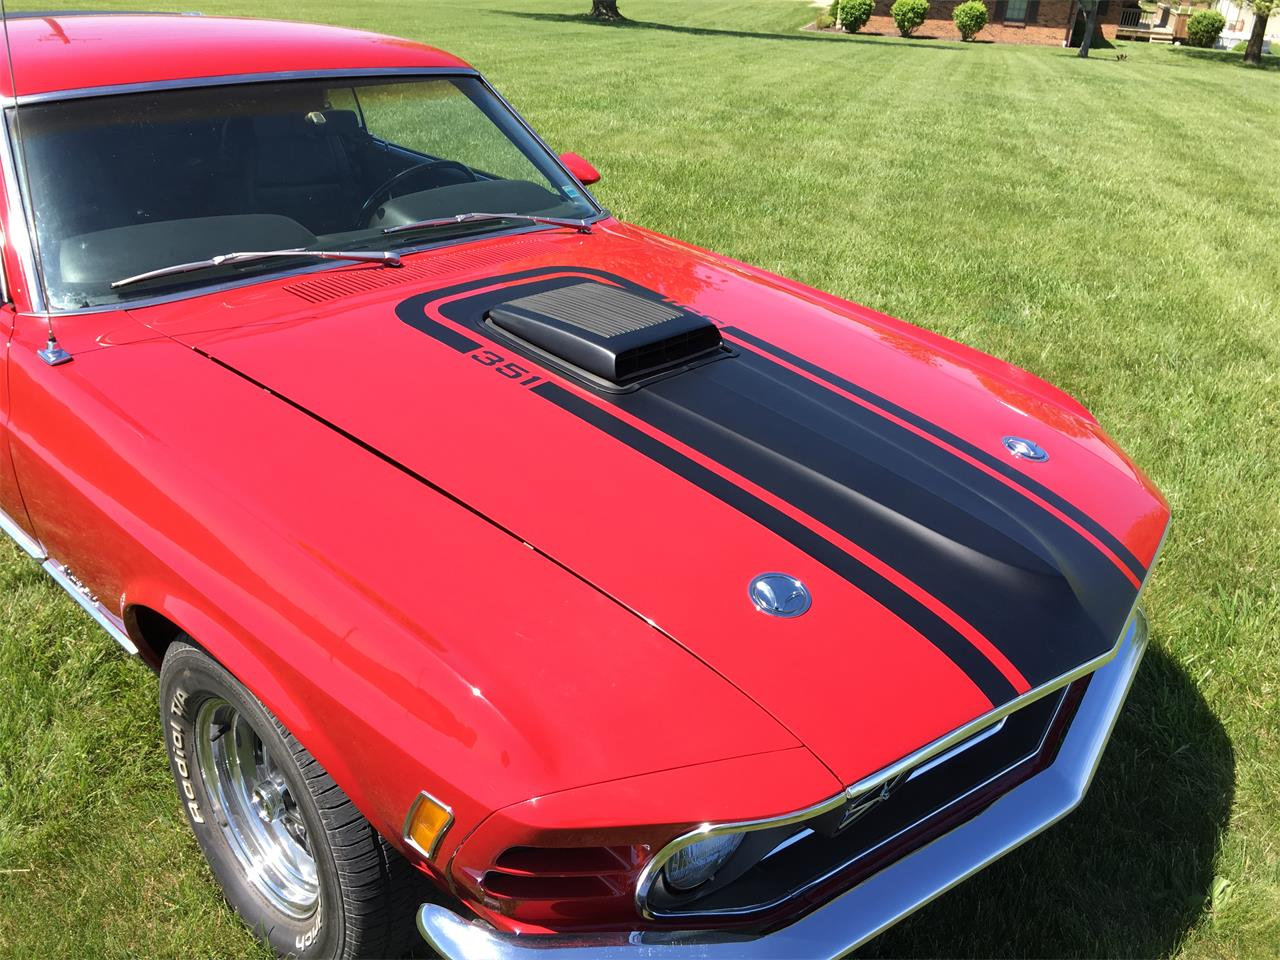 Large Picture of Classic '70 Ford Mustang Mach 1 - $52,500.00 - KZXT